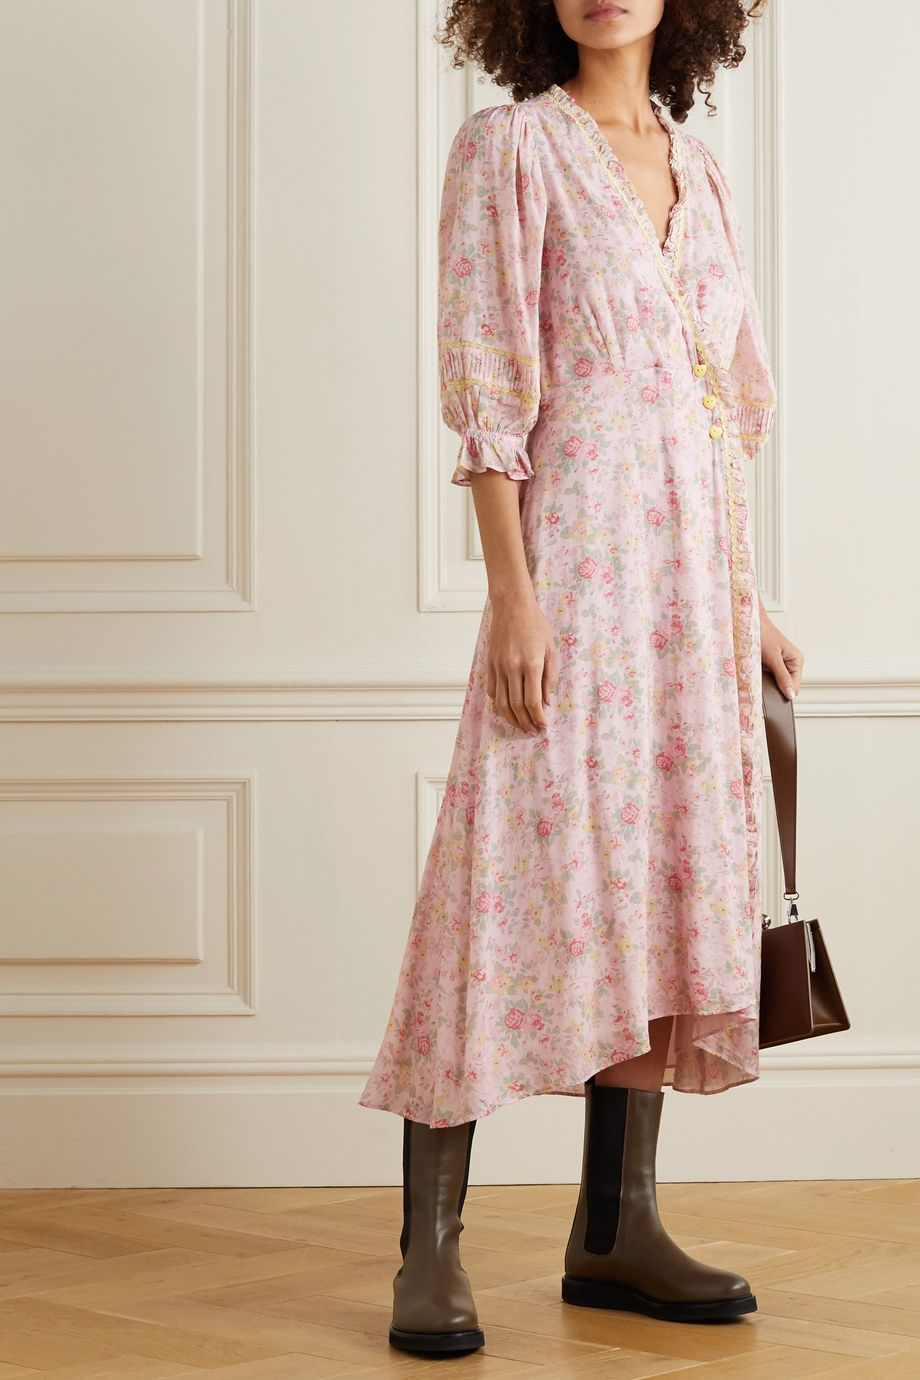 LoveShackFancy Sarabeth rickrack and lace-trimmed floral-print cotton midi dress